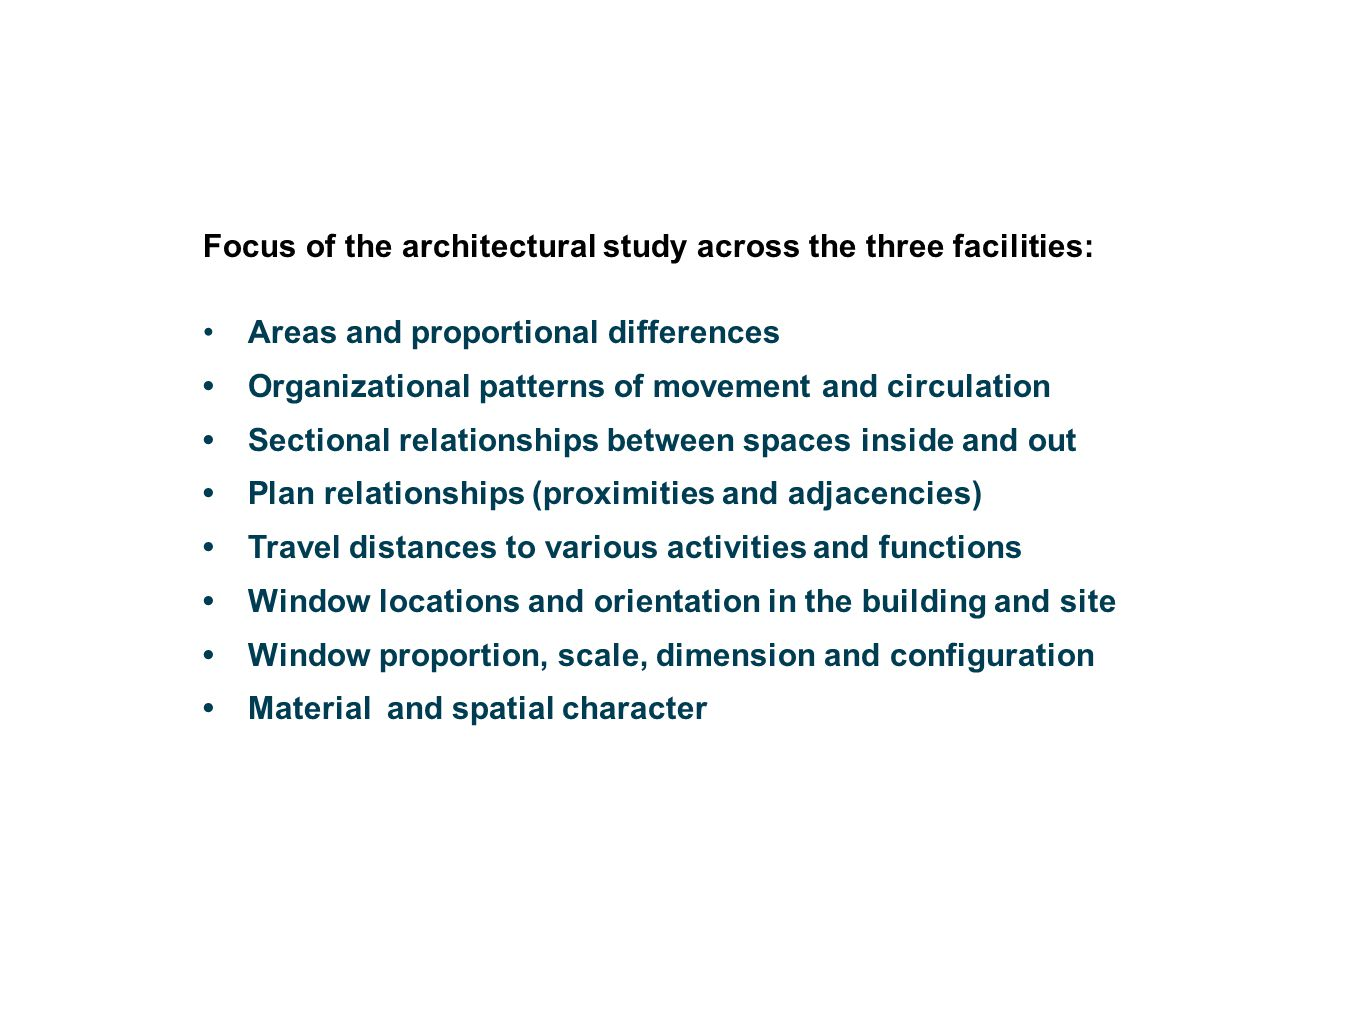 Focus of the architectural study across the three facilities: Areas and proportional differences Organizational patterns of movement and circulation S